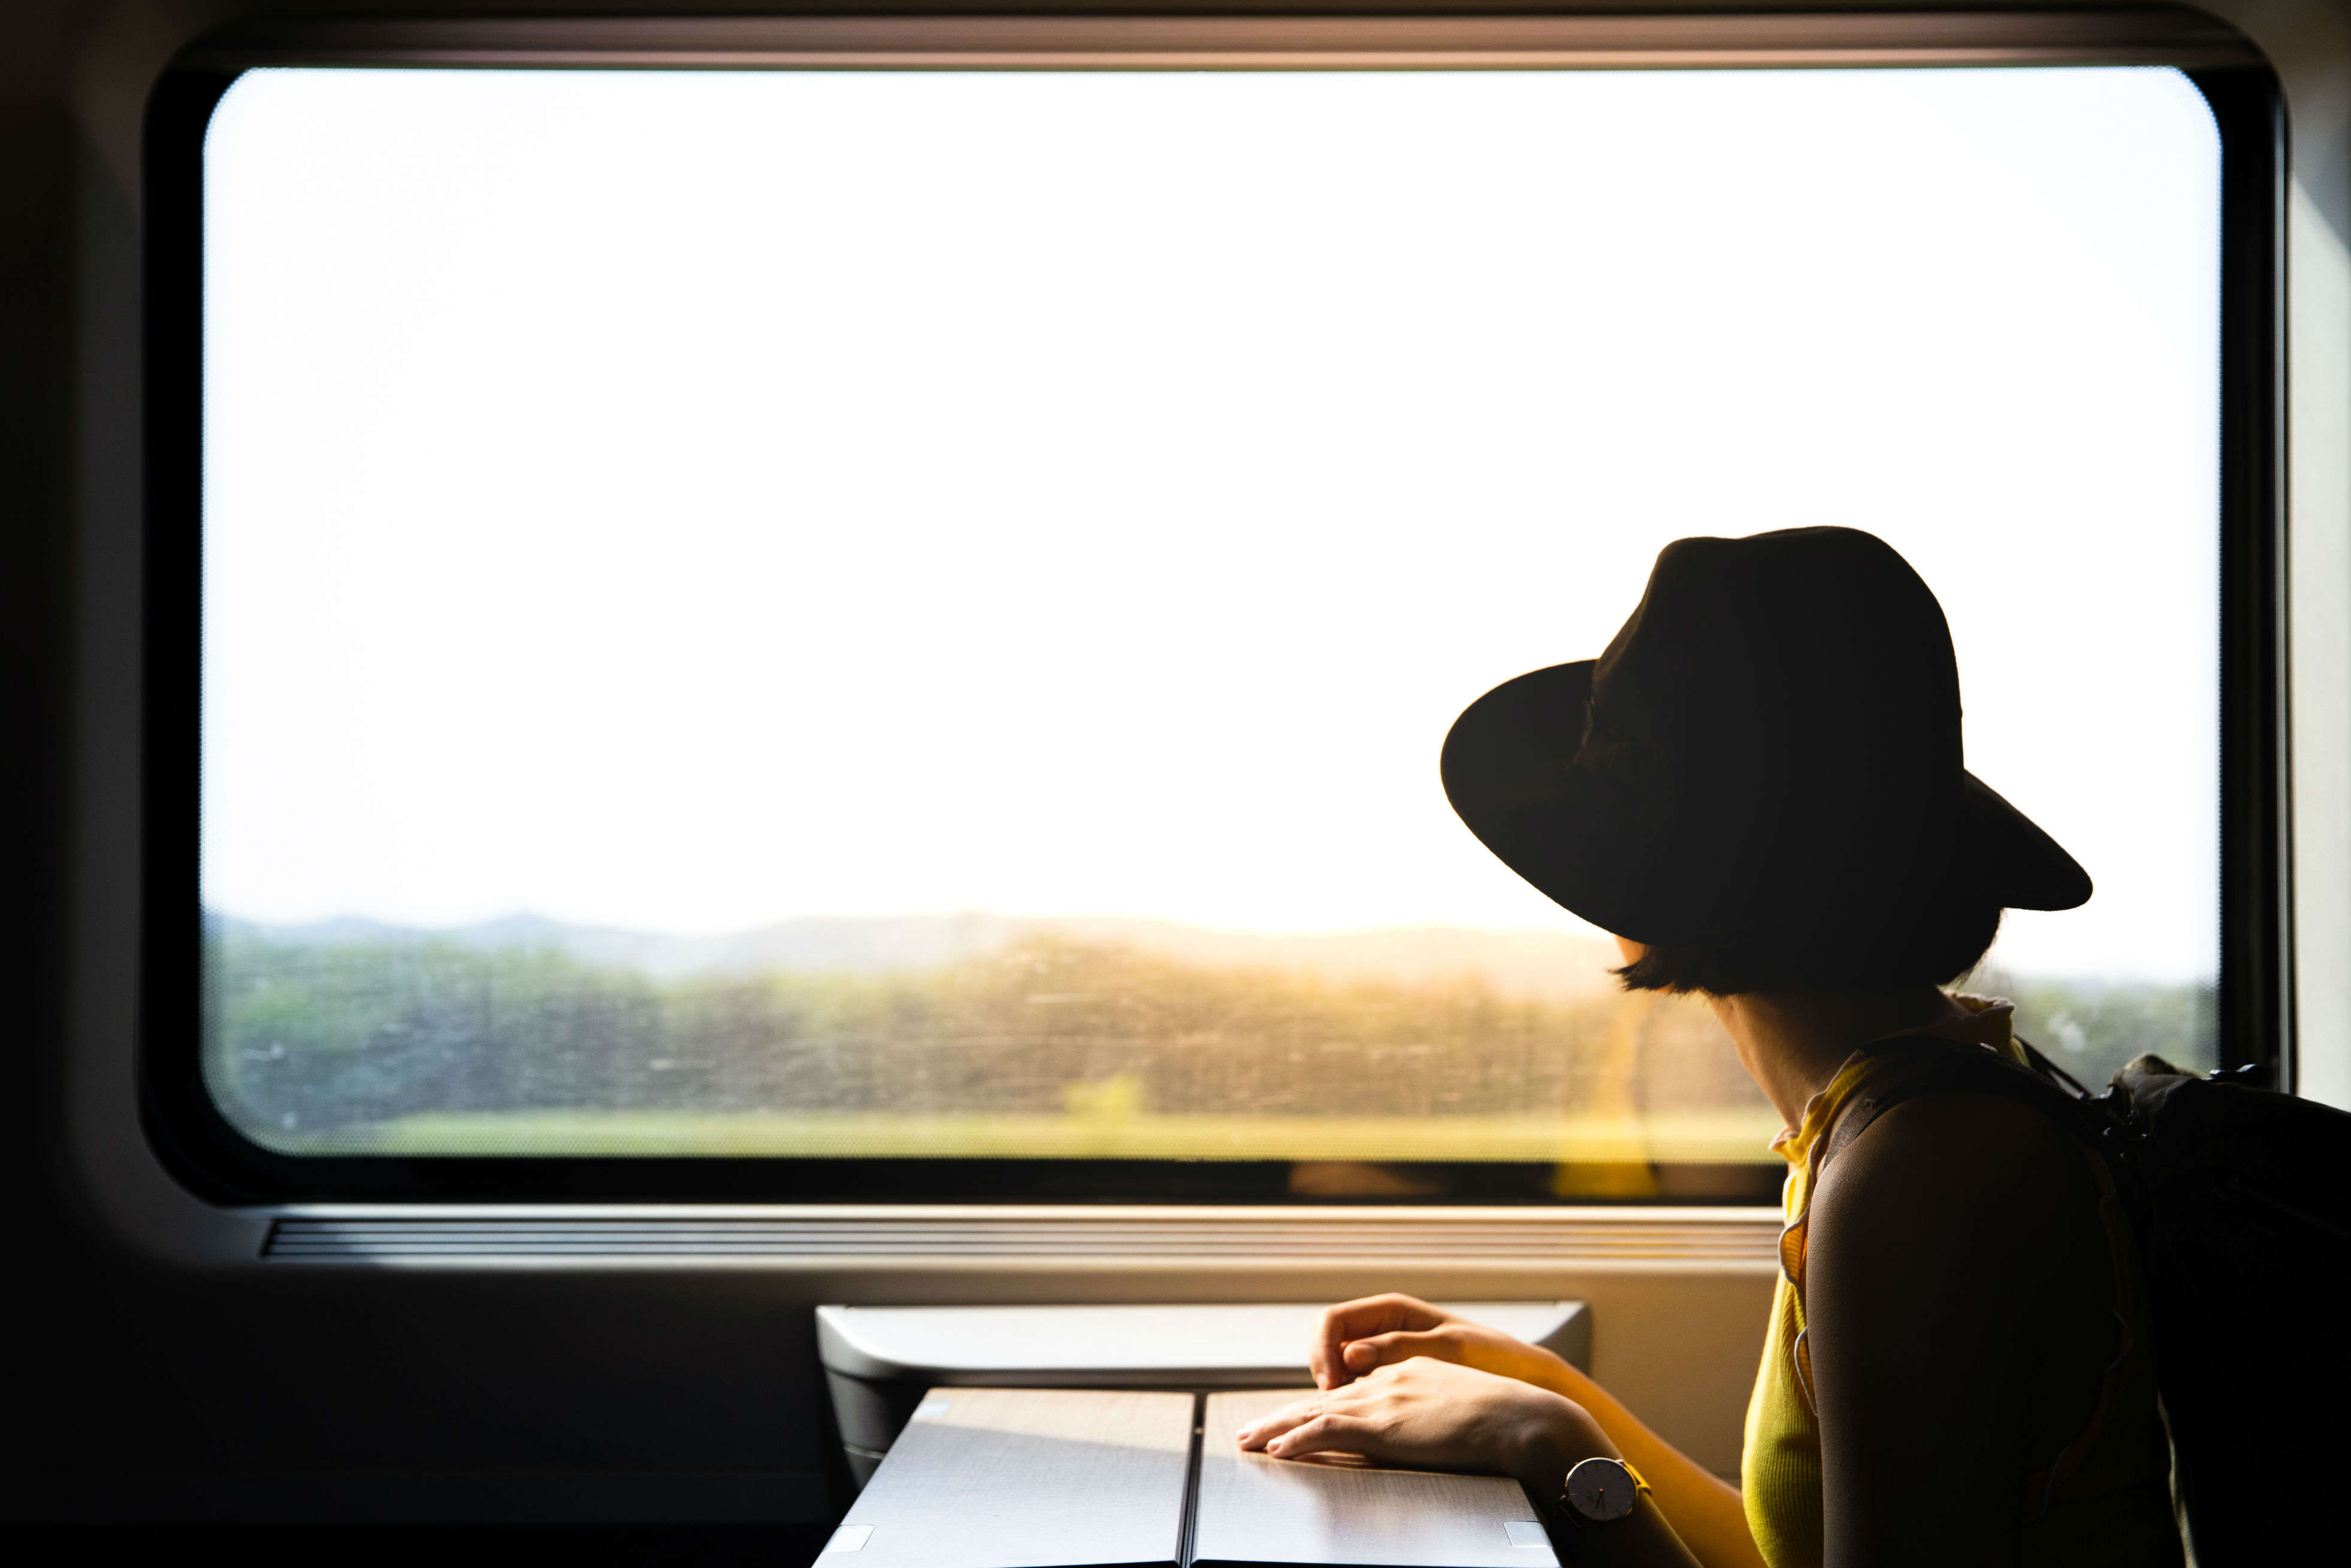 Indian Railways' on-board entertainment for passengers is closer to reality